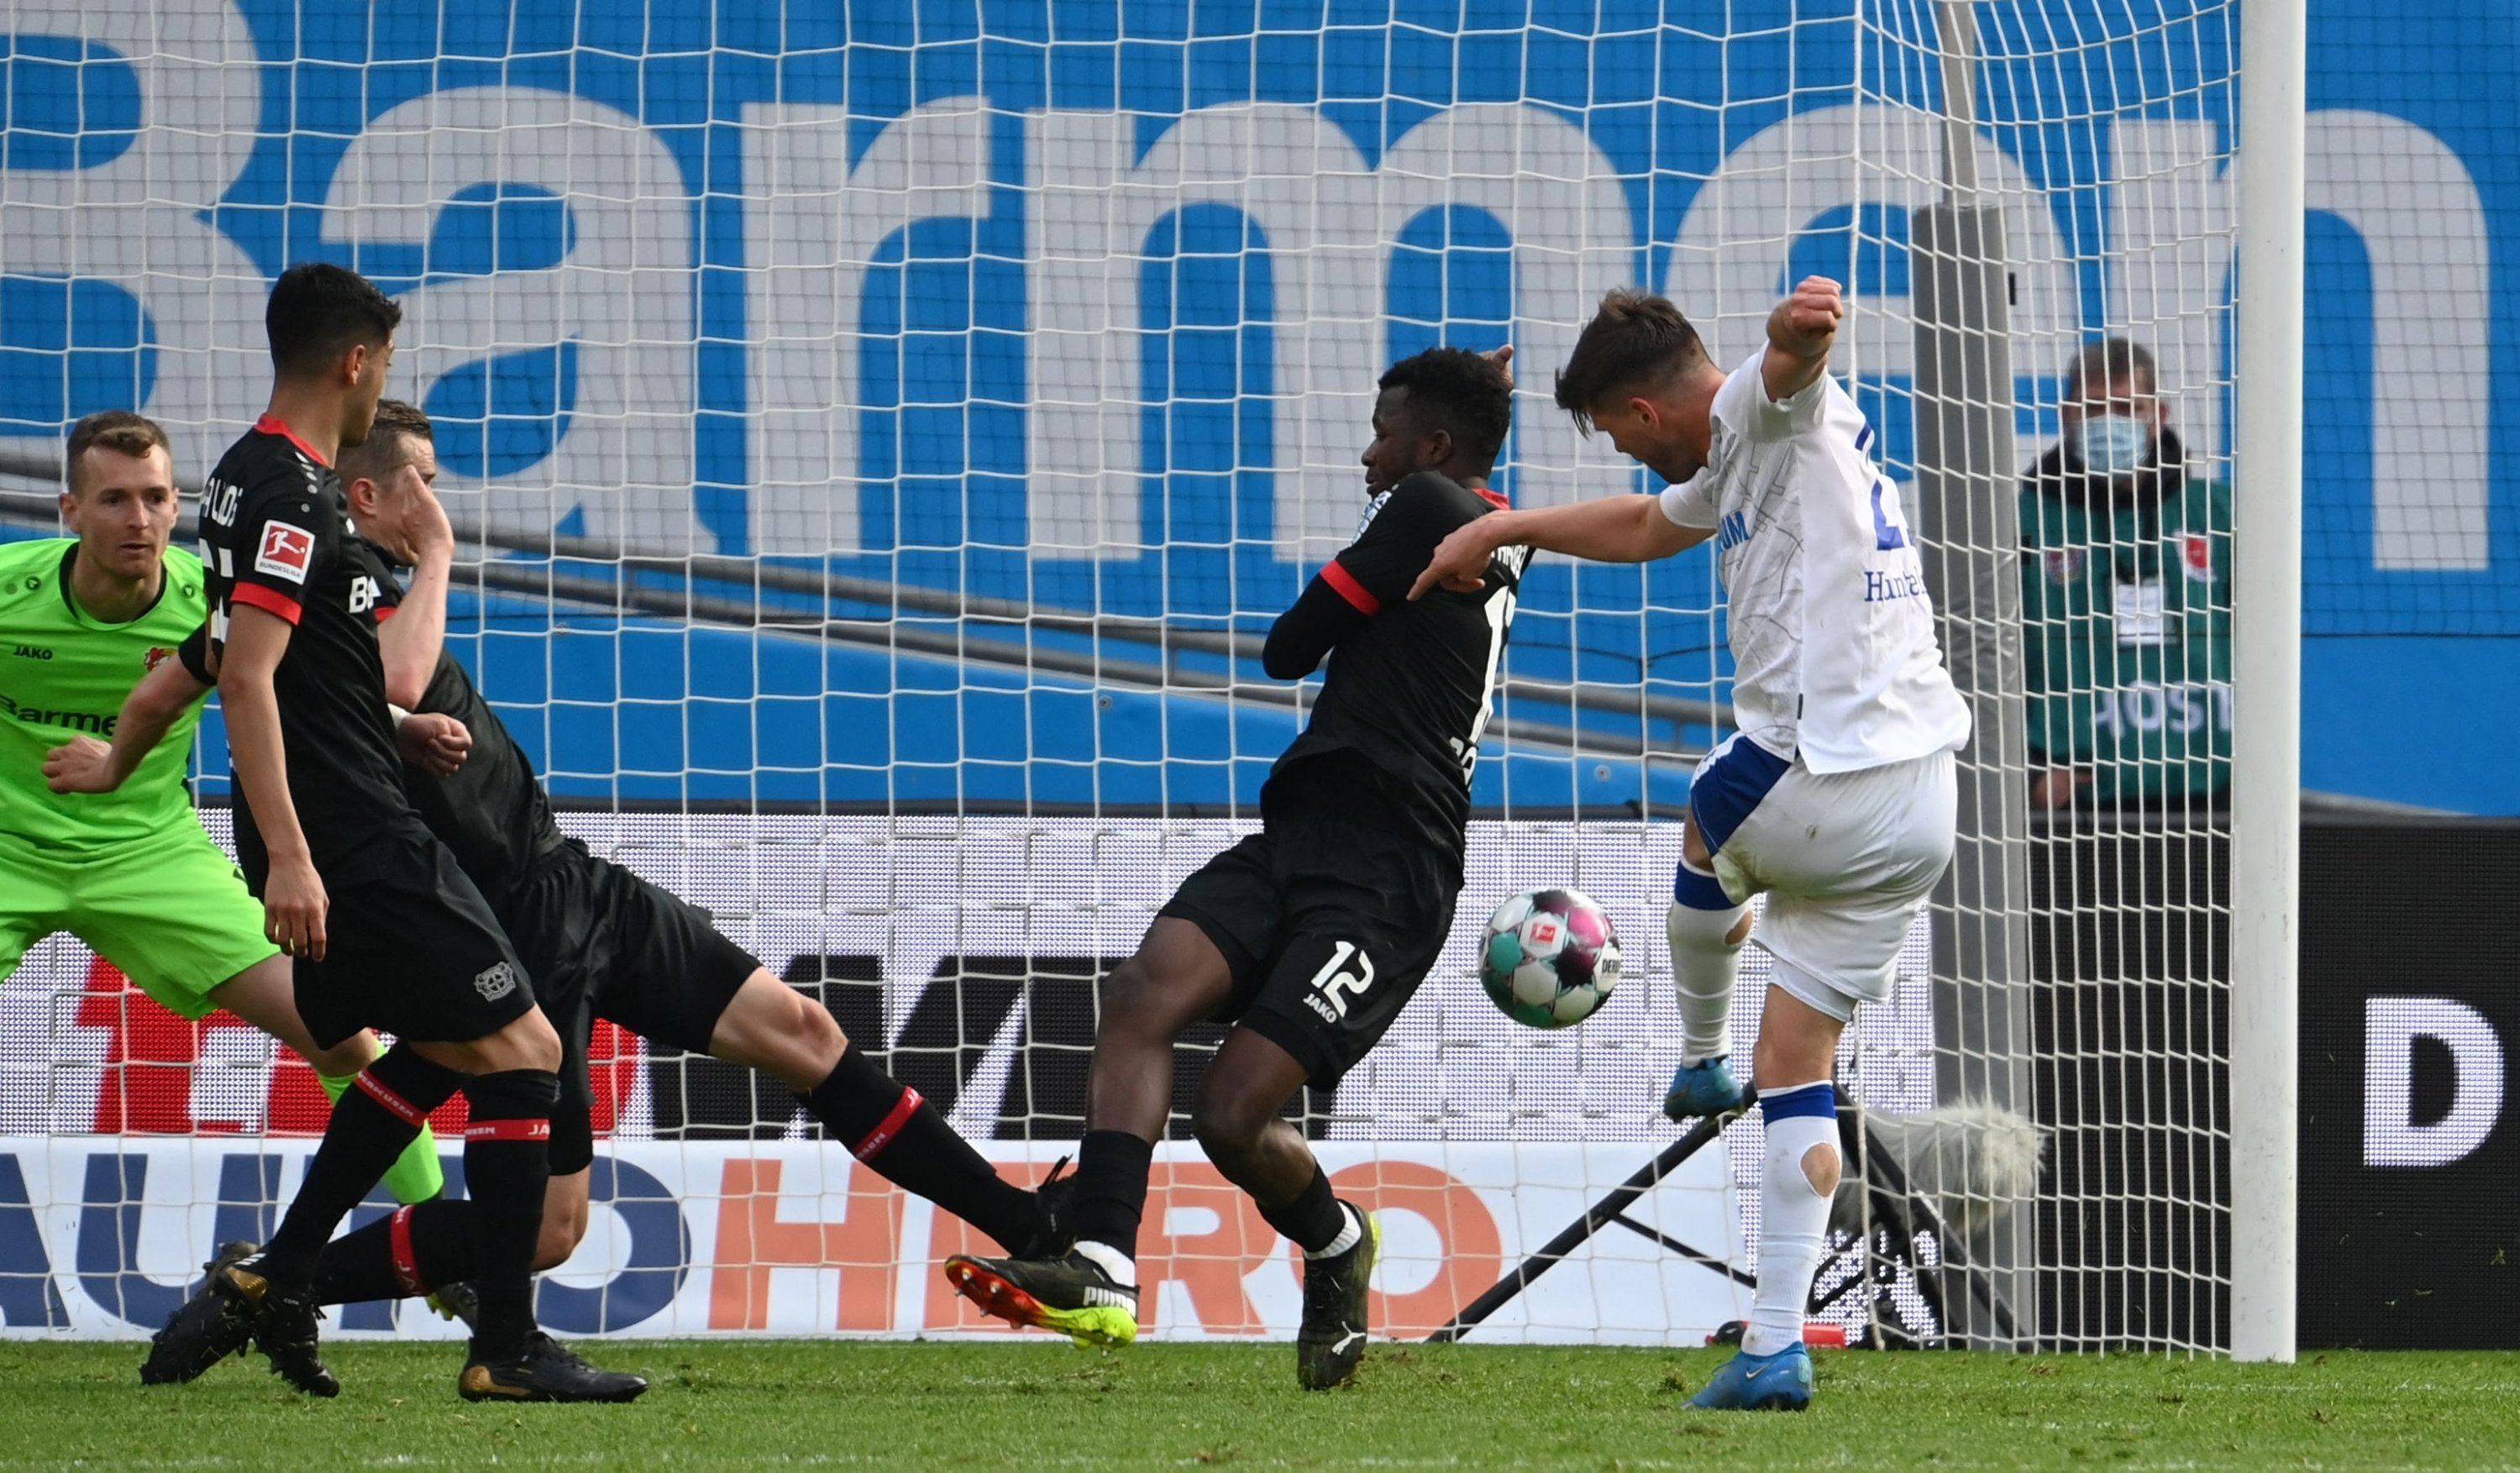 Schalke's Dutch forward Klaas-Jan Huntelaar (R) scores the 2-1 goal during the Bundesliga match against Bayer 04 Leverkusen, Leverkusen, western Germany, April 3, 2021. (Federico Gambarini/Pool/DFL via AFP)